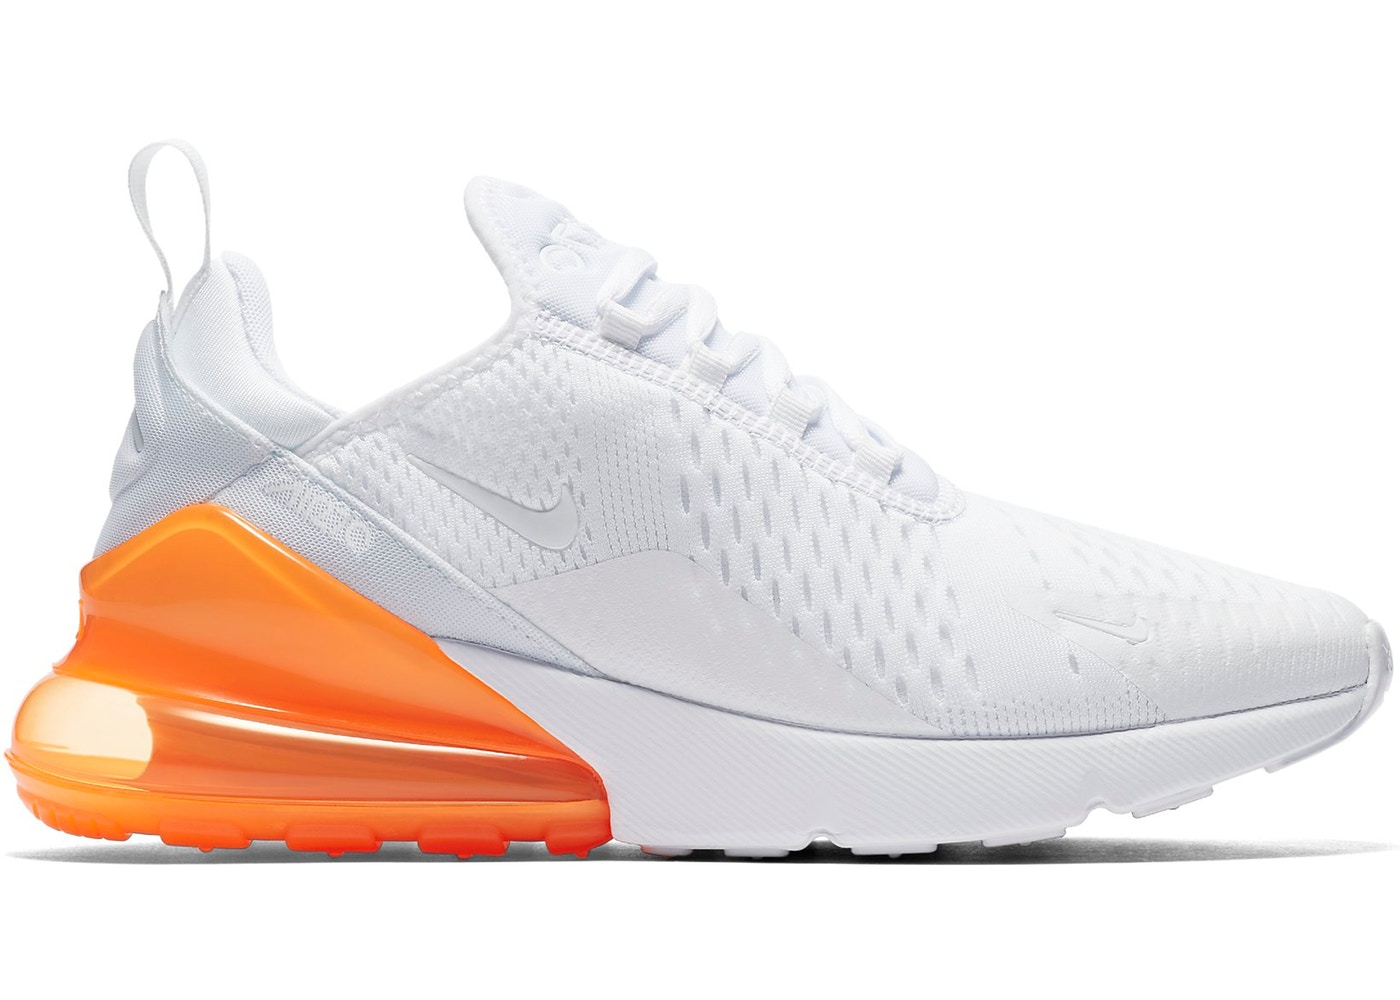 online retailer 6b57f f5ea6 Air Max 270 White Pack (Total Orange)